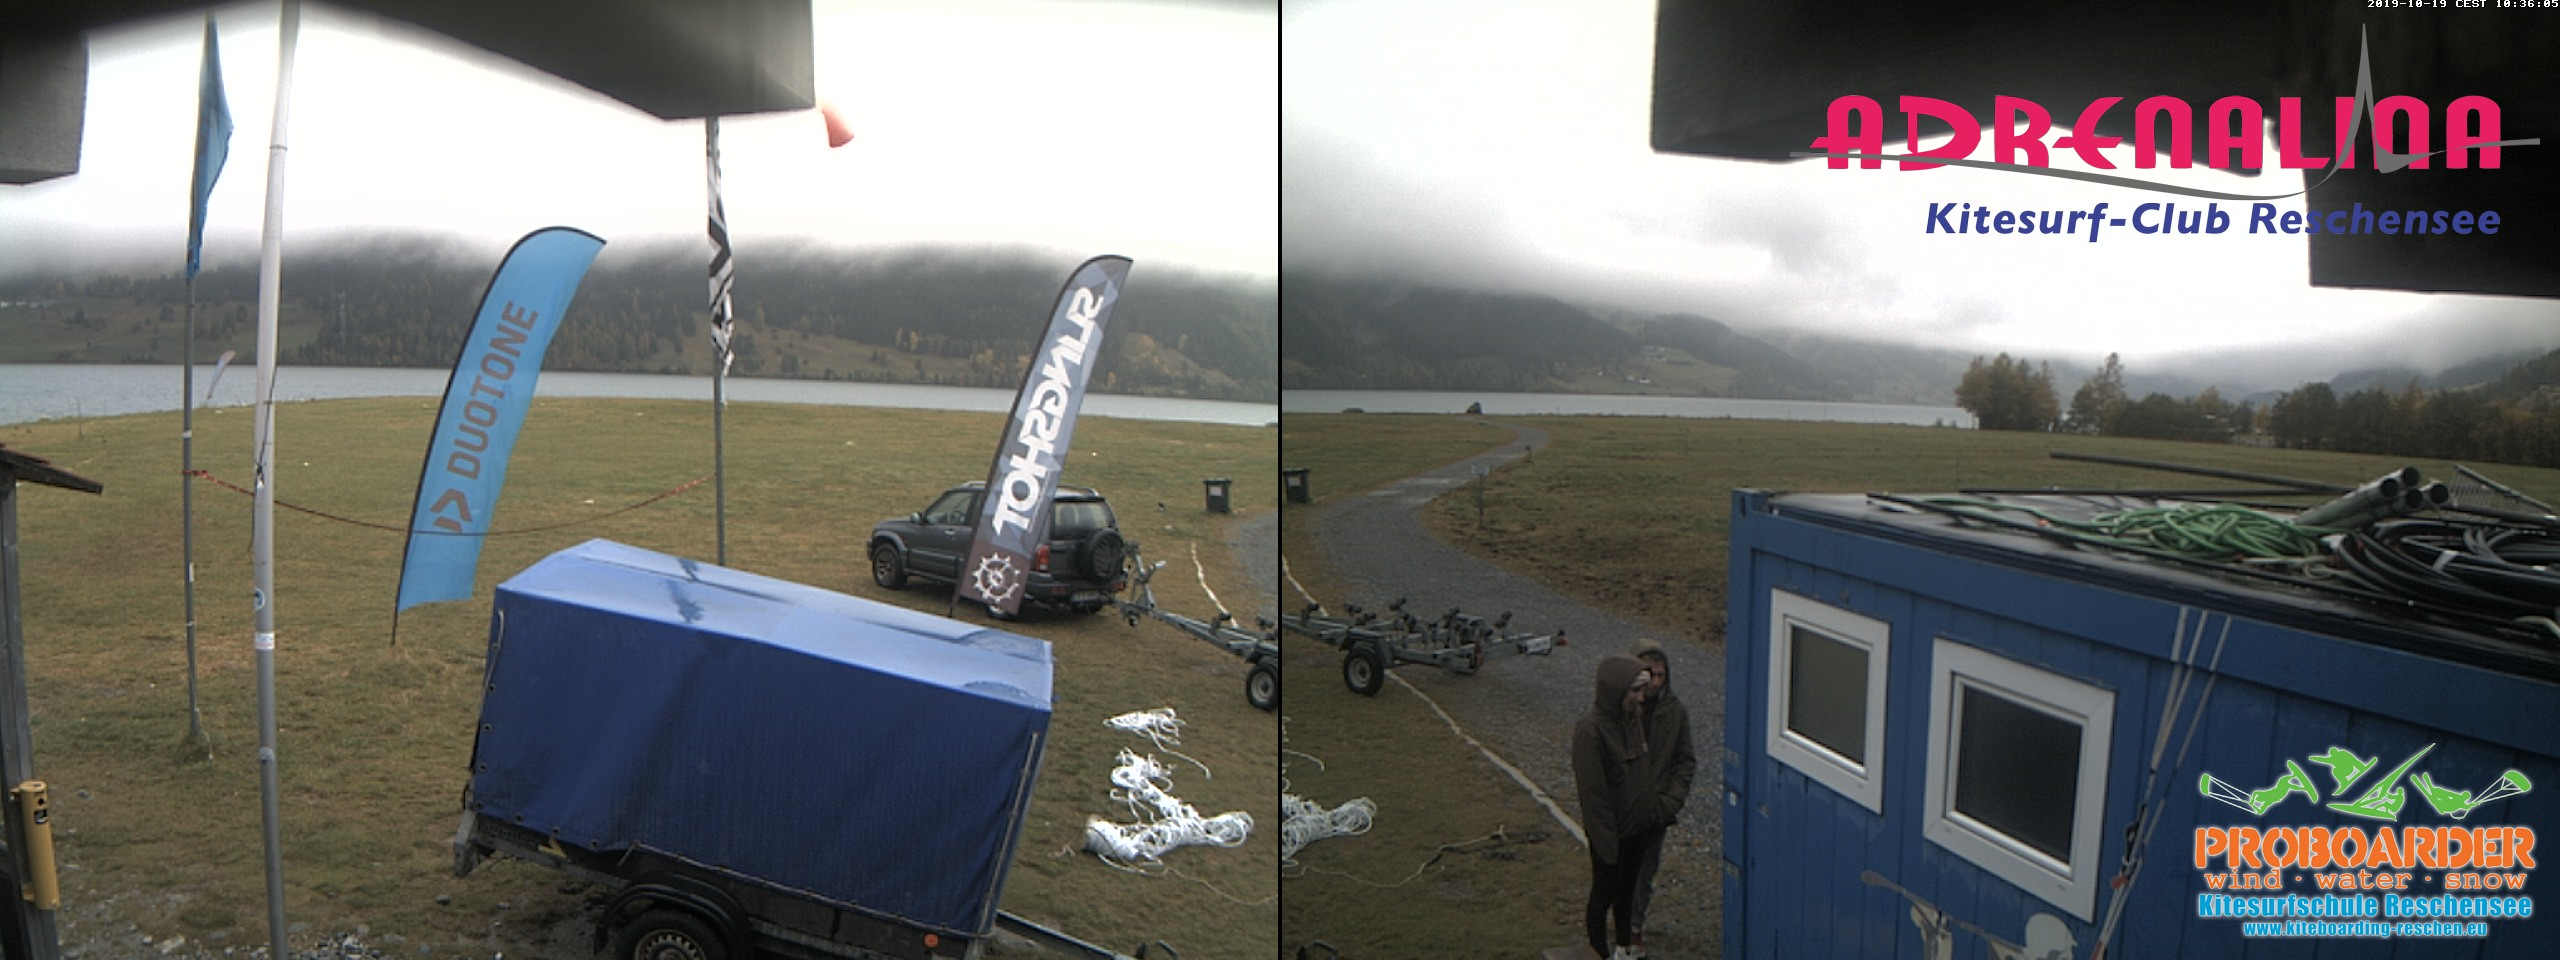 Webcam vom Reschensee am Adrenalina Kitesurf Club